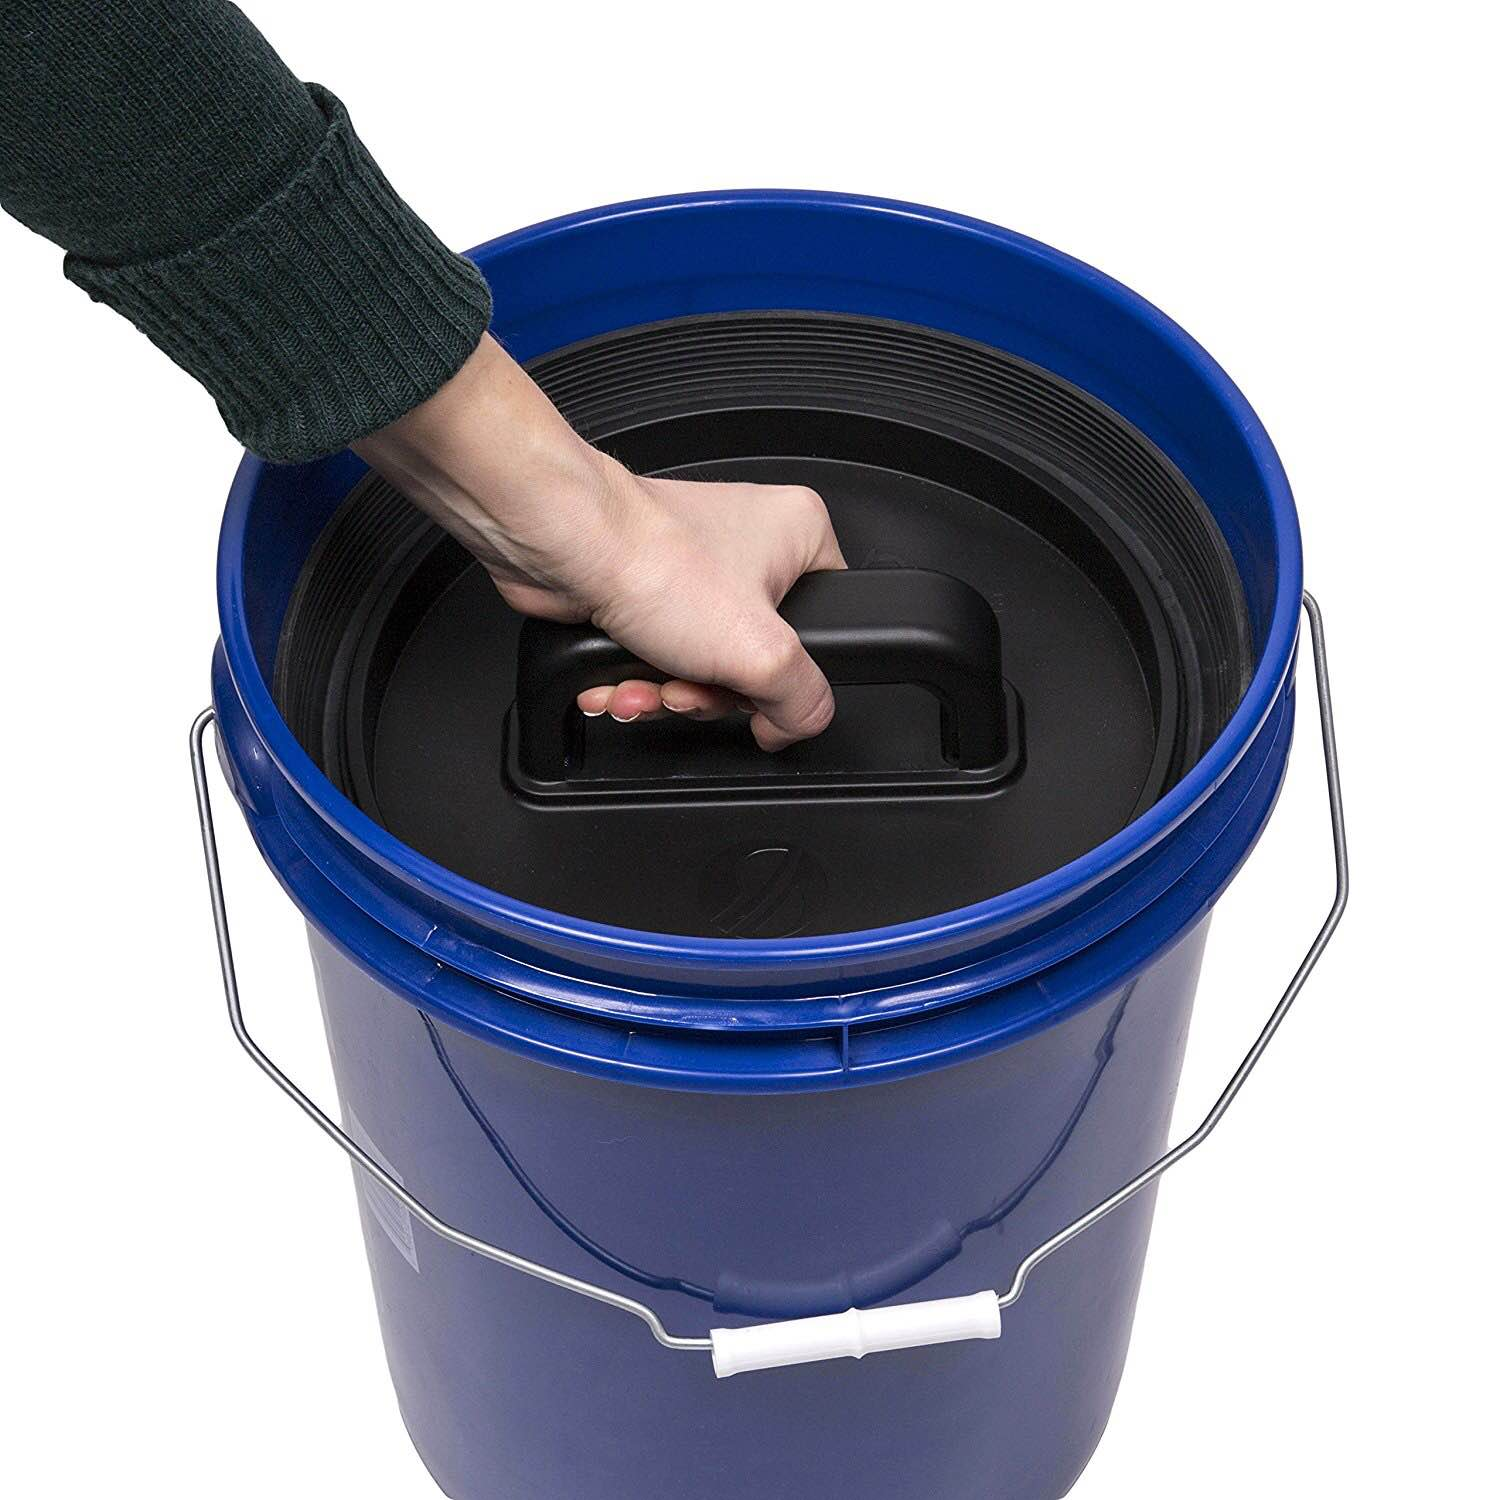 planetary-design-airscape-bucket-insert-lid